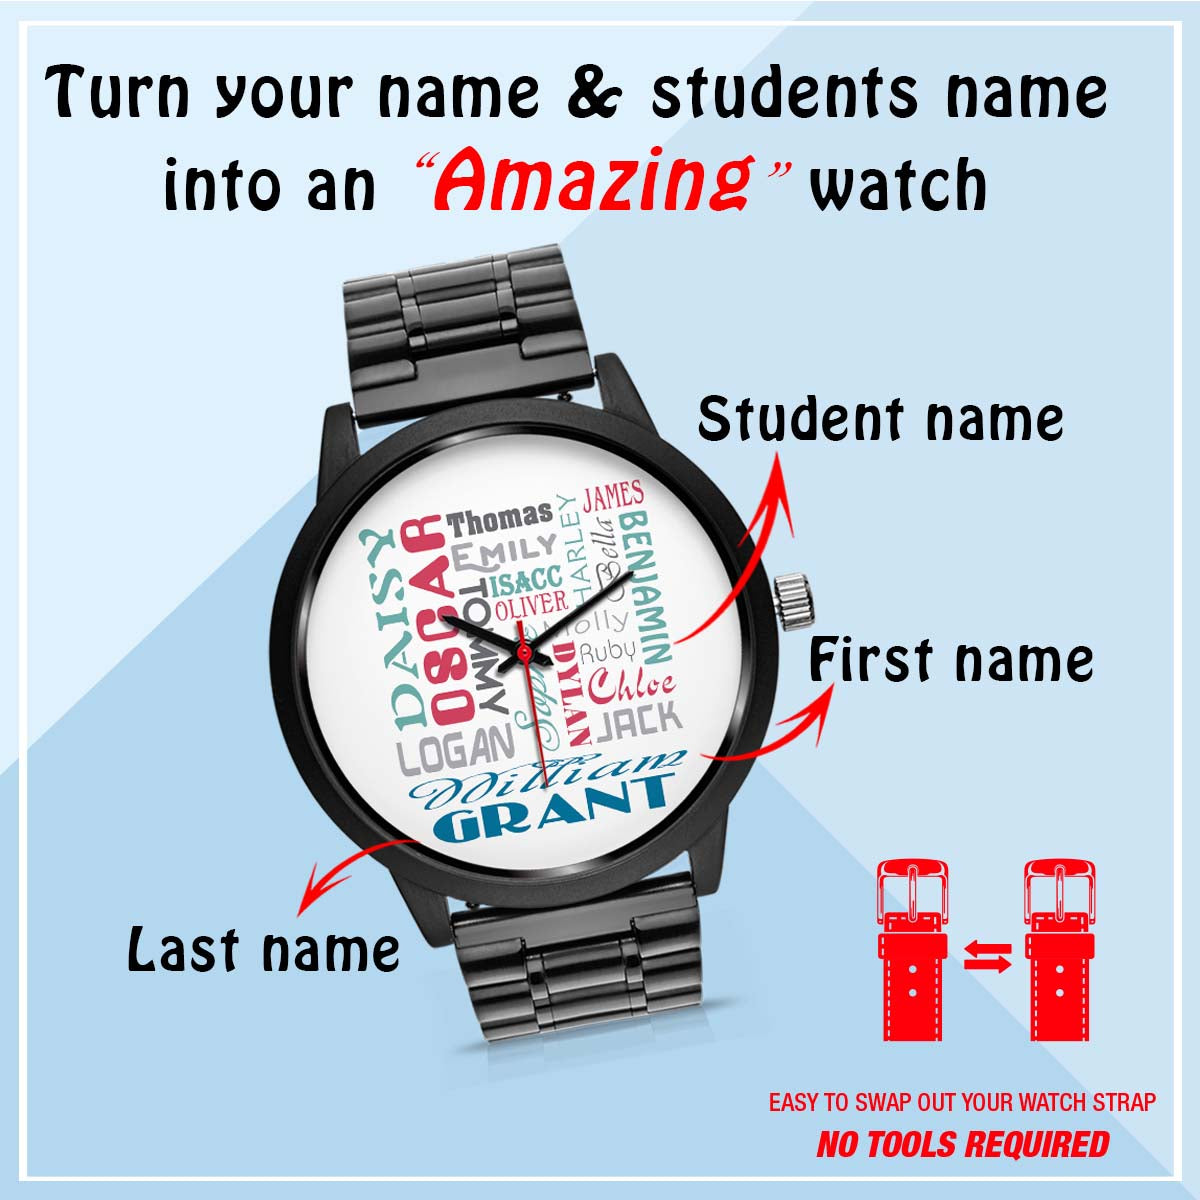 PERSONALIZED WATCH - CUSTOMIZE YOUR WATCH WITH YOUR NAME & YOUR CLASS/FAMILY/ETC. NAME